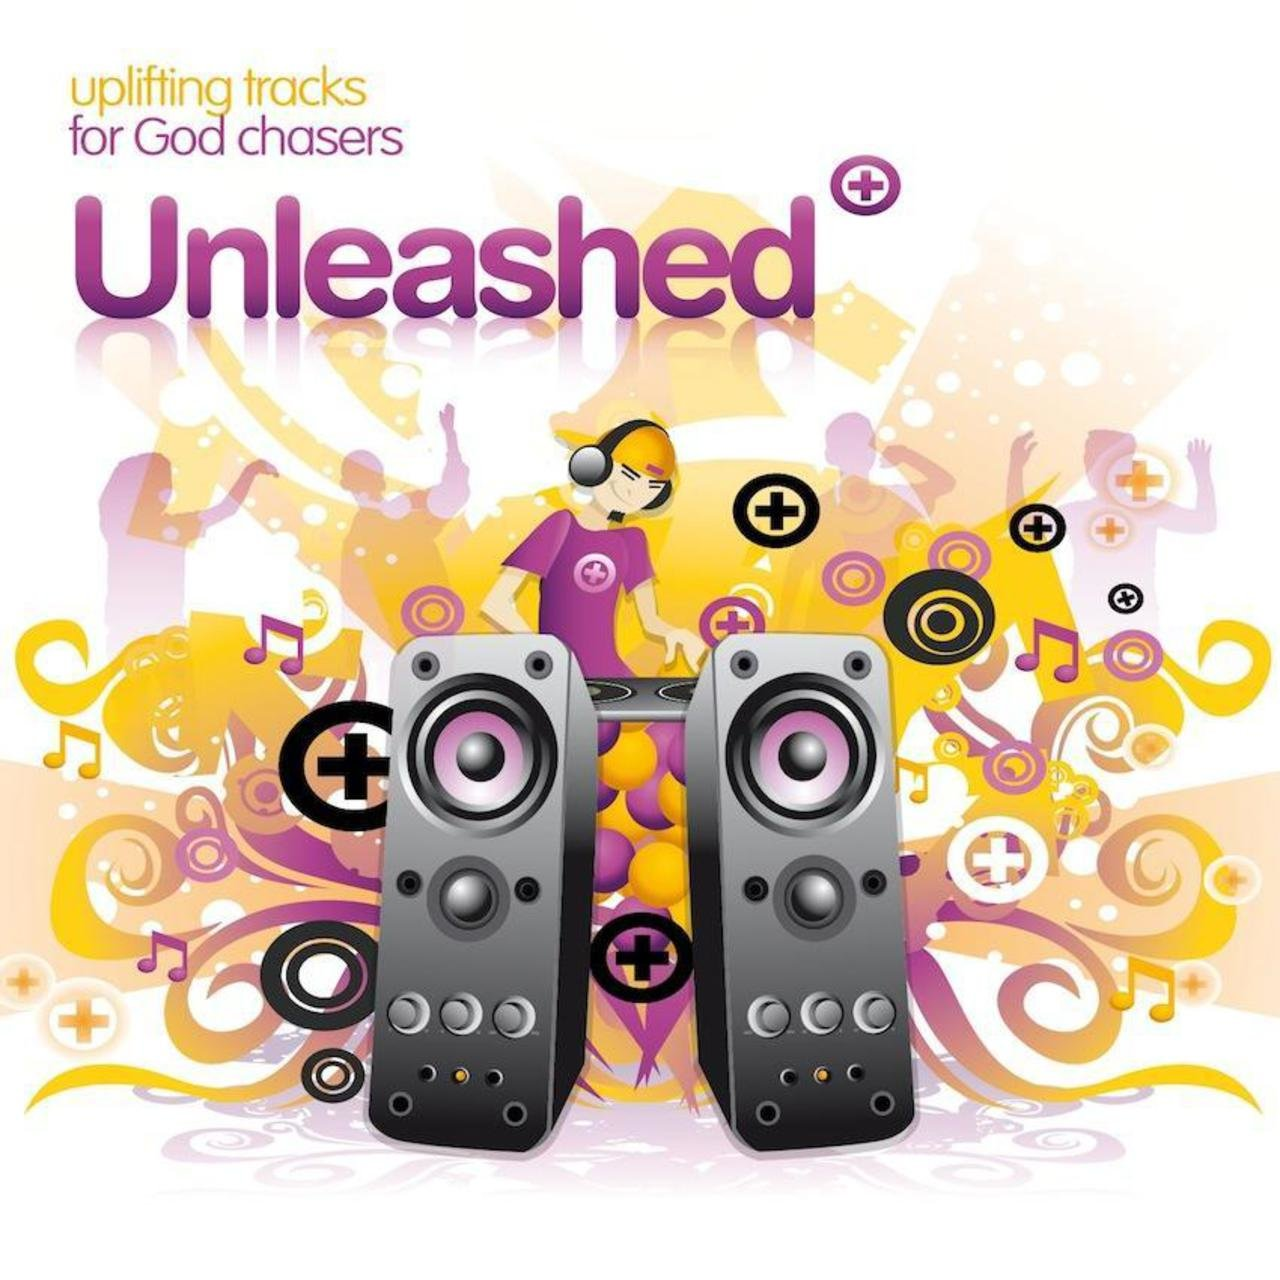 Unleashed: Uplifting Tracks for God Chasers